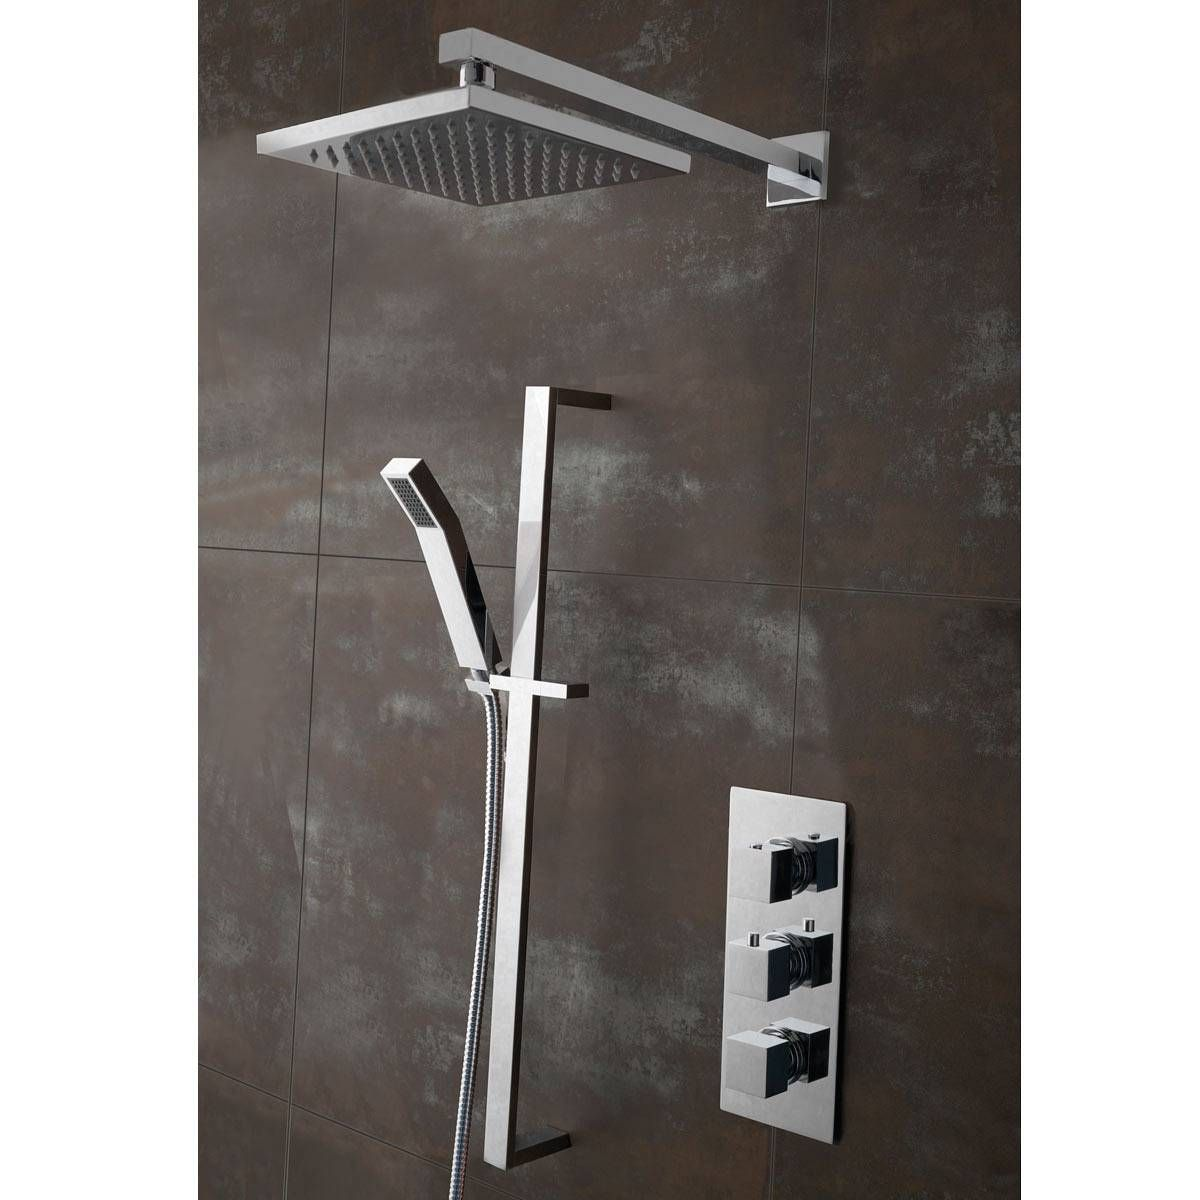 Bathroom Mirrors Victoria Plumb cubik thermostatic triple valve complete shower set - victoria